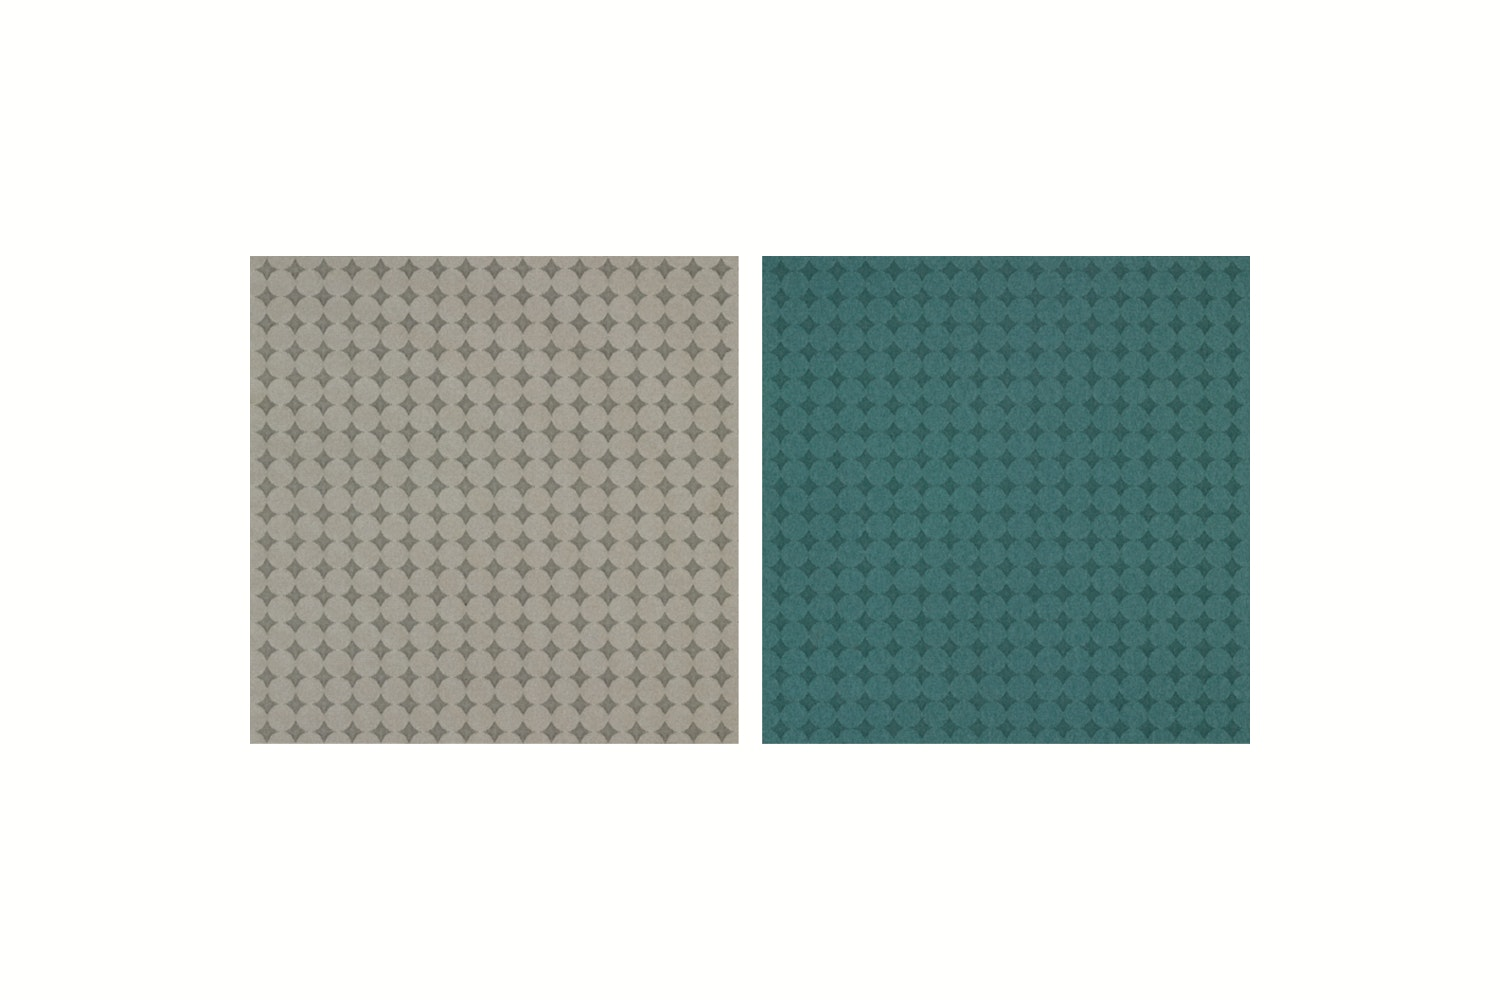 Peggy Woven Wall-to-Wall Carpet by Anna Schou for Kasthall